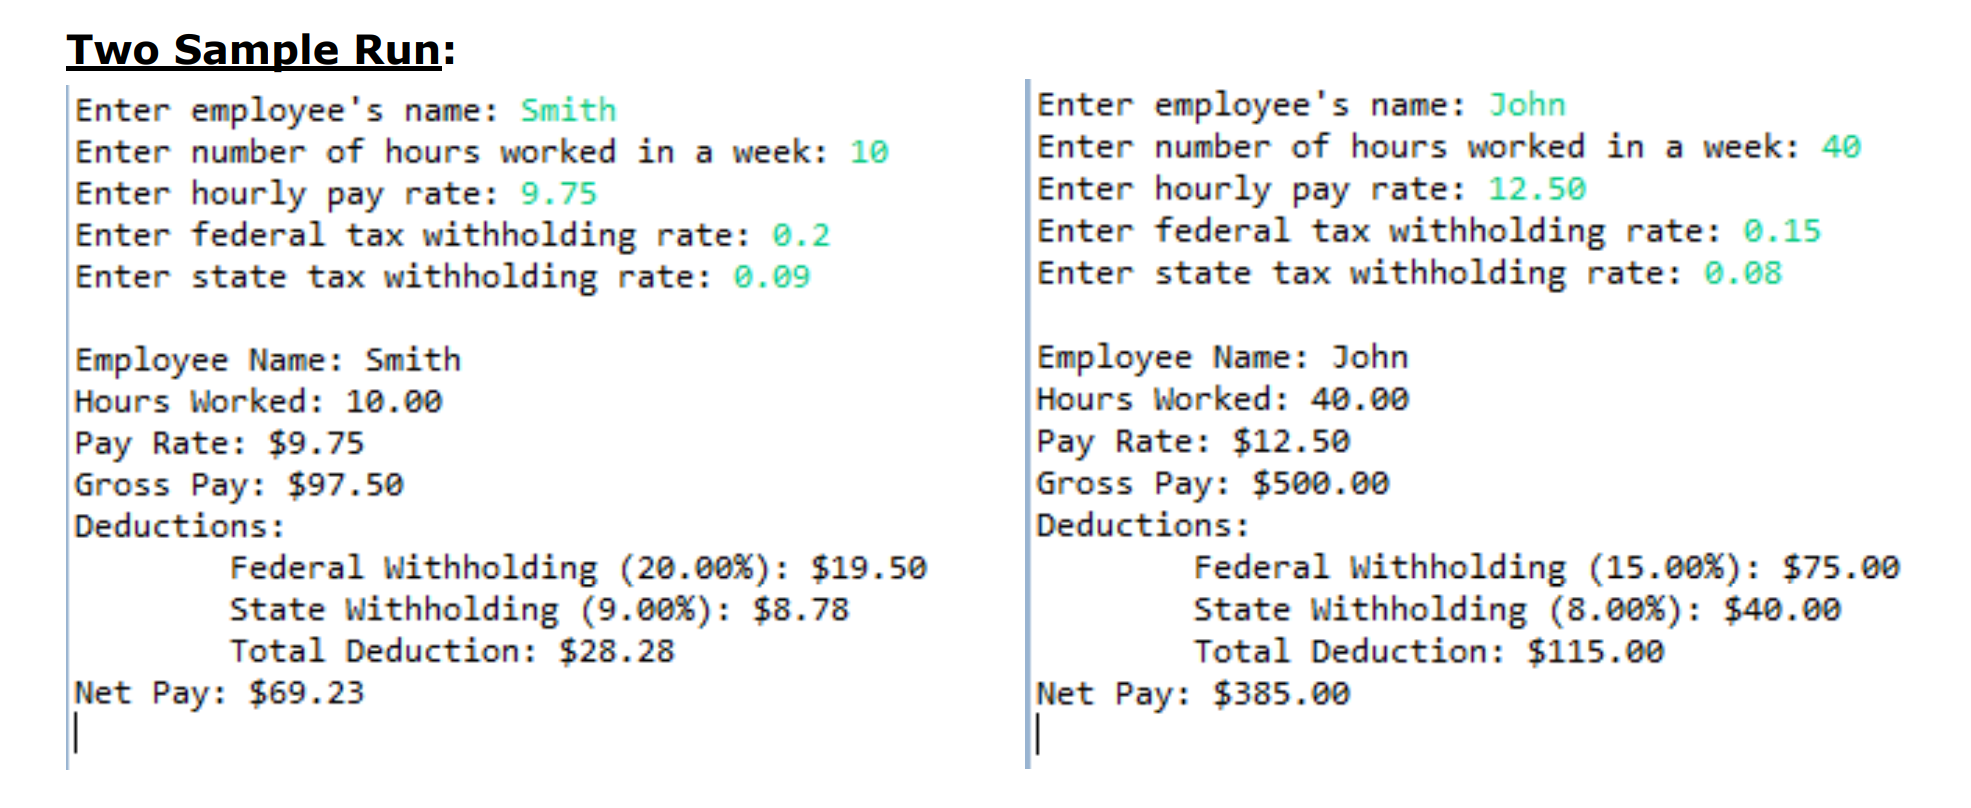 Two Sample Run: Enter emplovee's name: Smith Enter number of hours worked in a week: 10 Enter hourly pay rate: 9.75 Enter federal tax withholding rate: 0.2 Enter state tax withholding rate: 0.09 Enter employee's name: John Enter number of hours worked in a week: 40 Enter hourly pay rate: 12.50 Enter federal tax withholding rate: 0.15 Enter state tax withholding rate: 0.08 Employee Name: Smith Hours Worked 10.00 Pay Rate: $9.75 Gross Pay: $97.50 Deductions: Employee Name: John Hours Worked: 40.00 Pay Rate: $12.50 Gross Pay: $500.00 Deductions: Federal withholding (20.00%): $19.50 state withholding (9.00%): $8.78 Total Deduction: $28.28 Federal withholding (15.00%): $75.00 state withholding (8.00%); $48.00 Total Deduction: $115.00 Net Pay: $69.23 Net Pay: $385.00